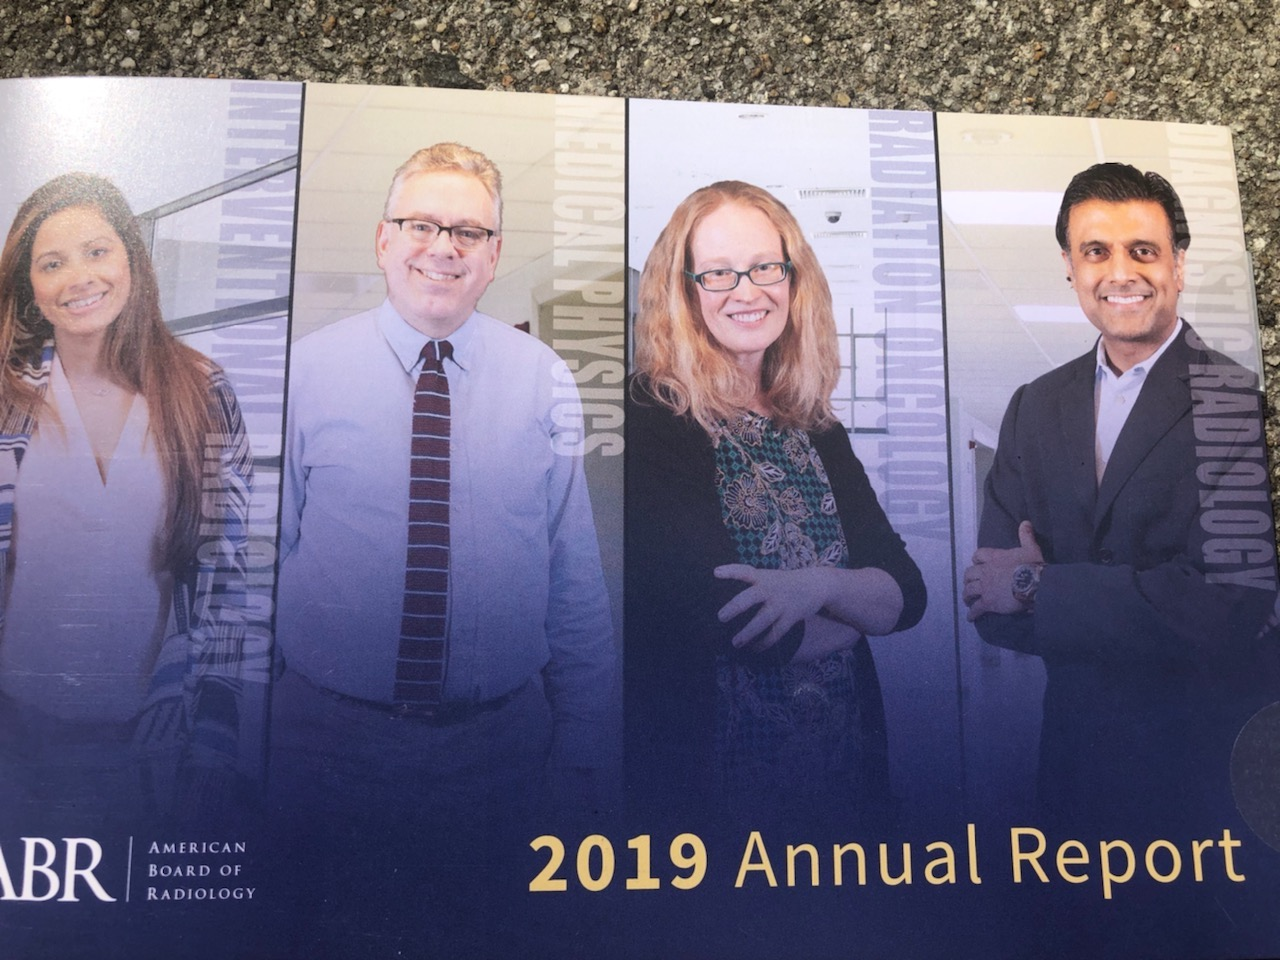 Bridget Koontz  in American Board of Radiology's 2019 Annual Report